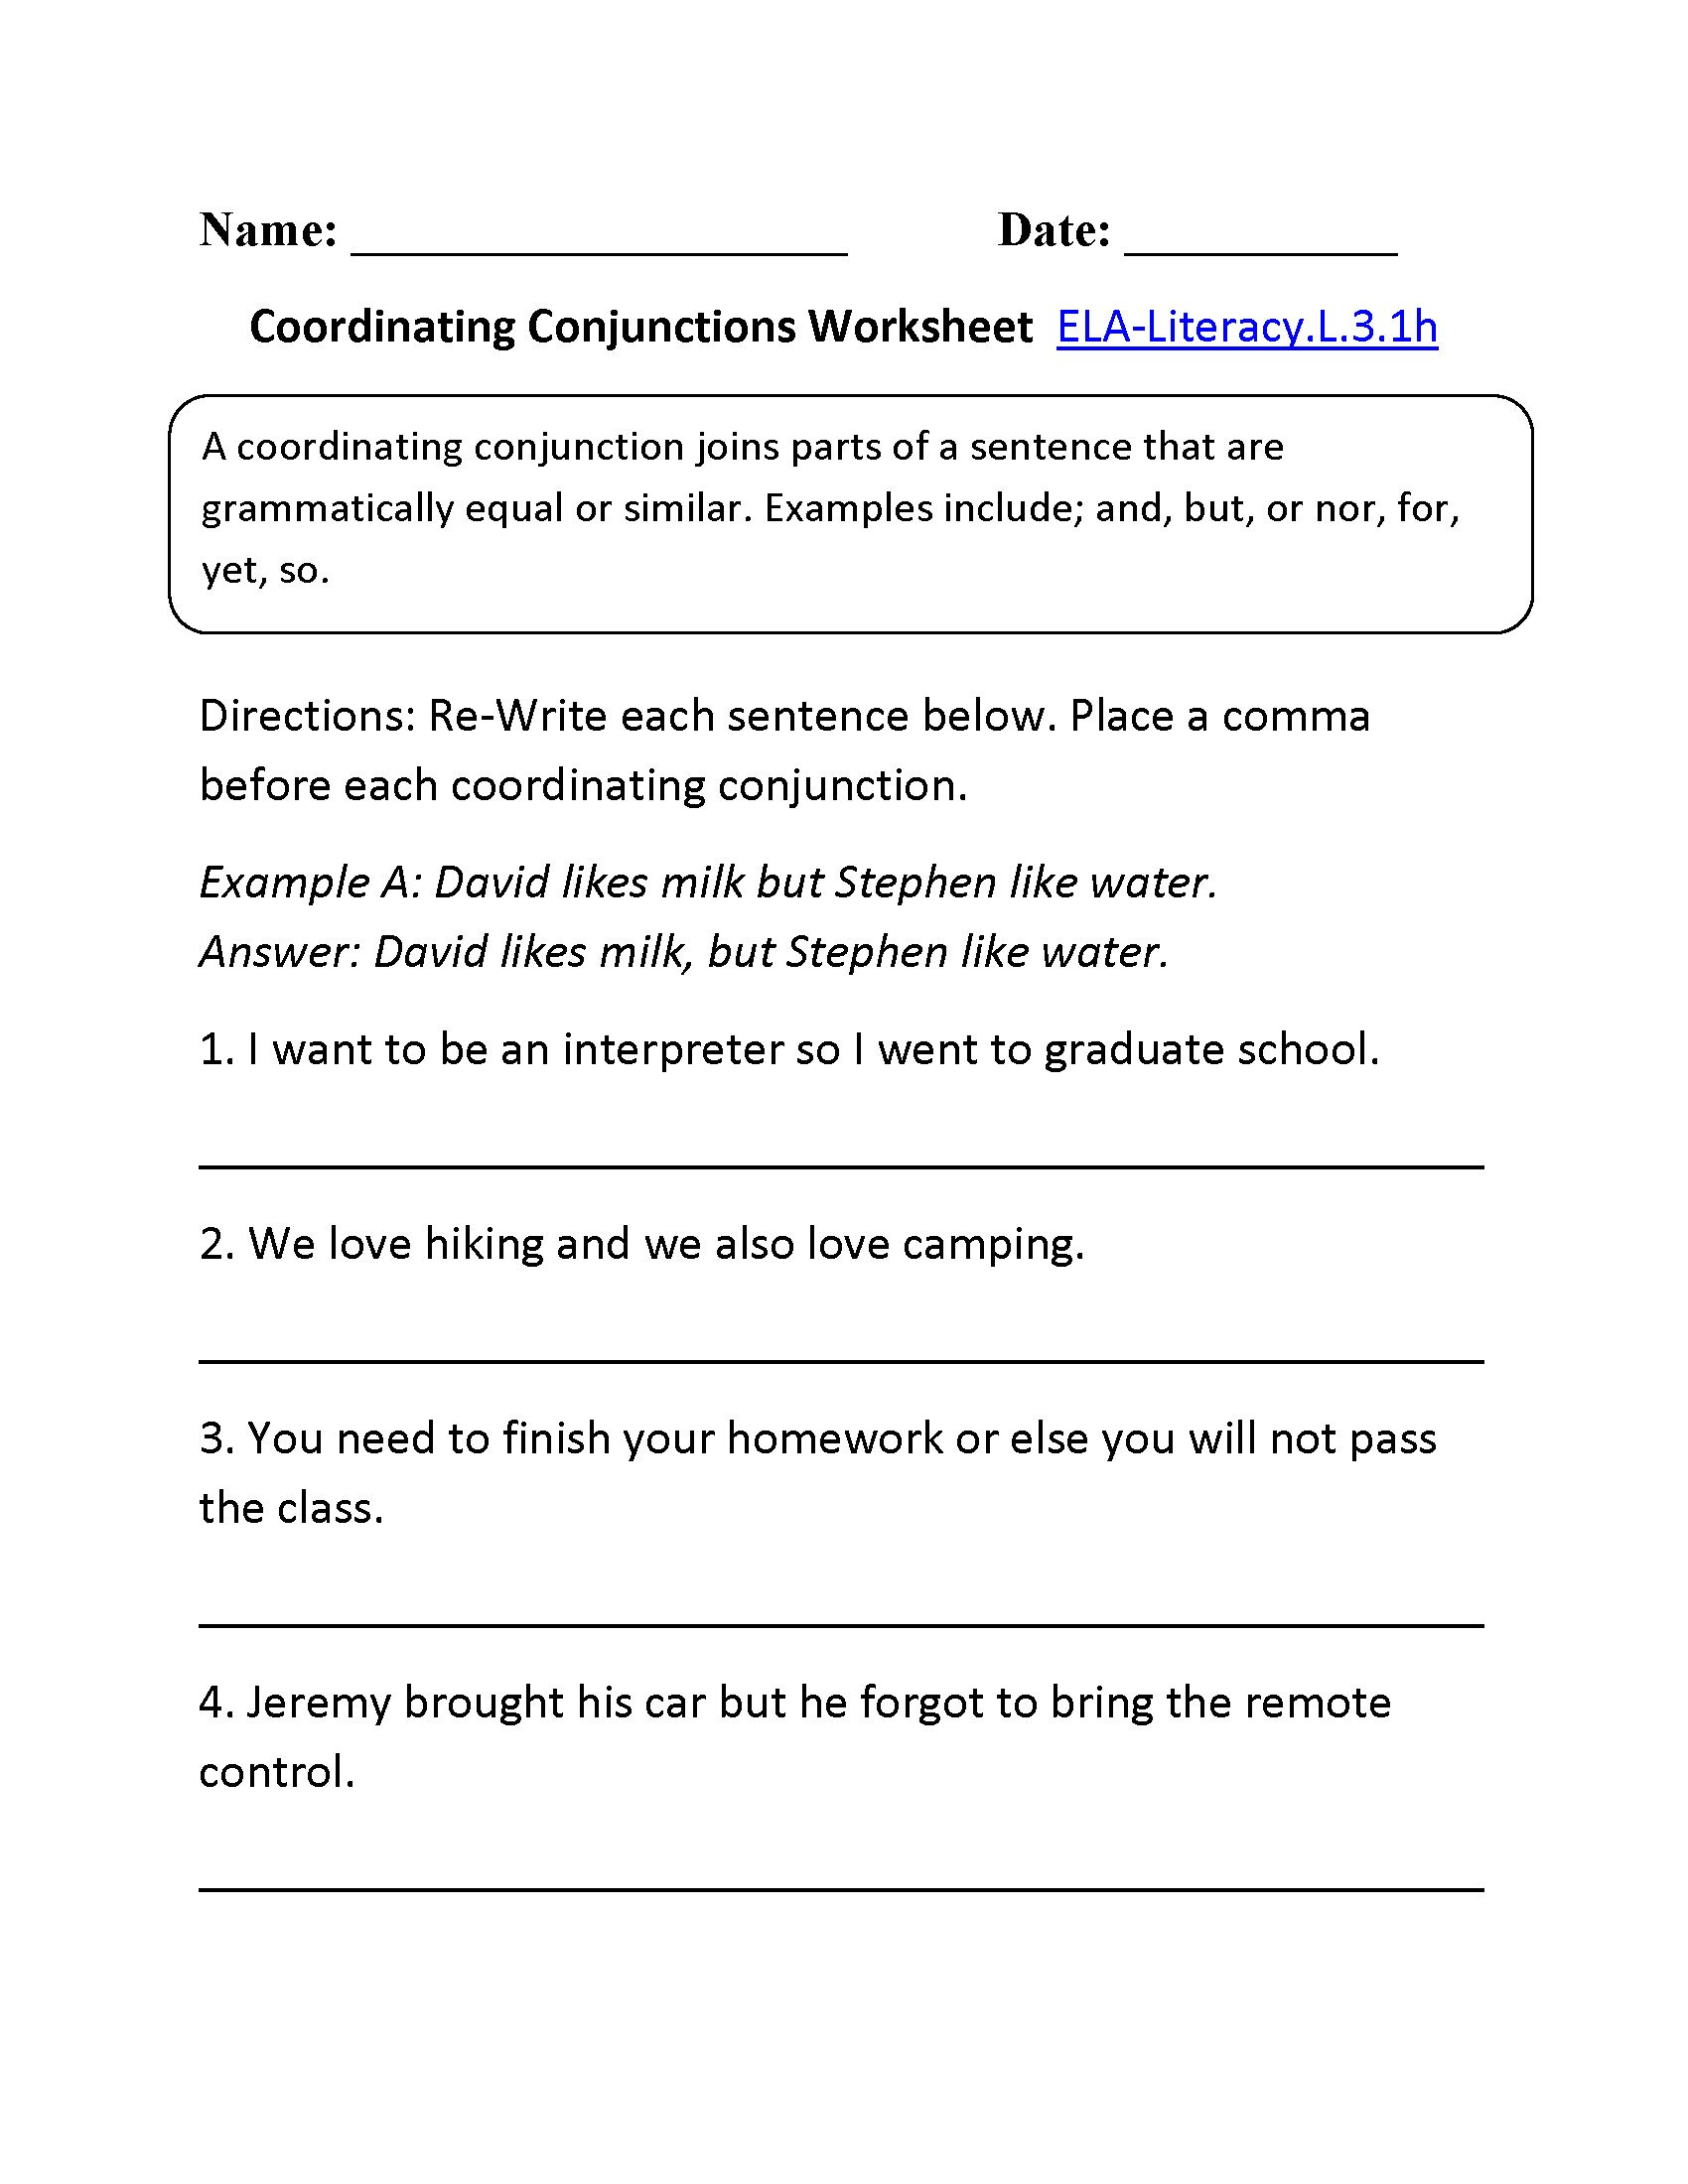 Correlative Conjunctions Worksheets with Answers Using Conjunctions Worksheet